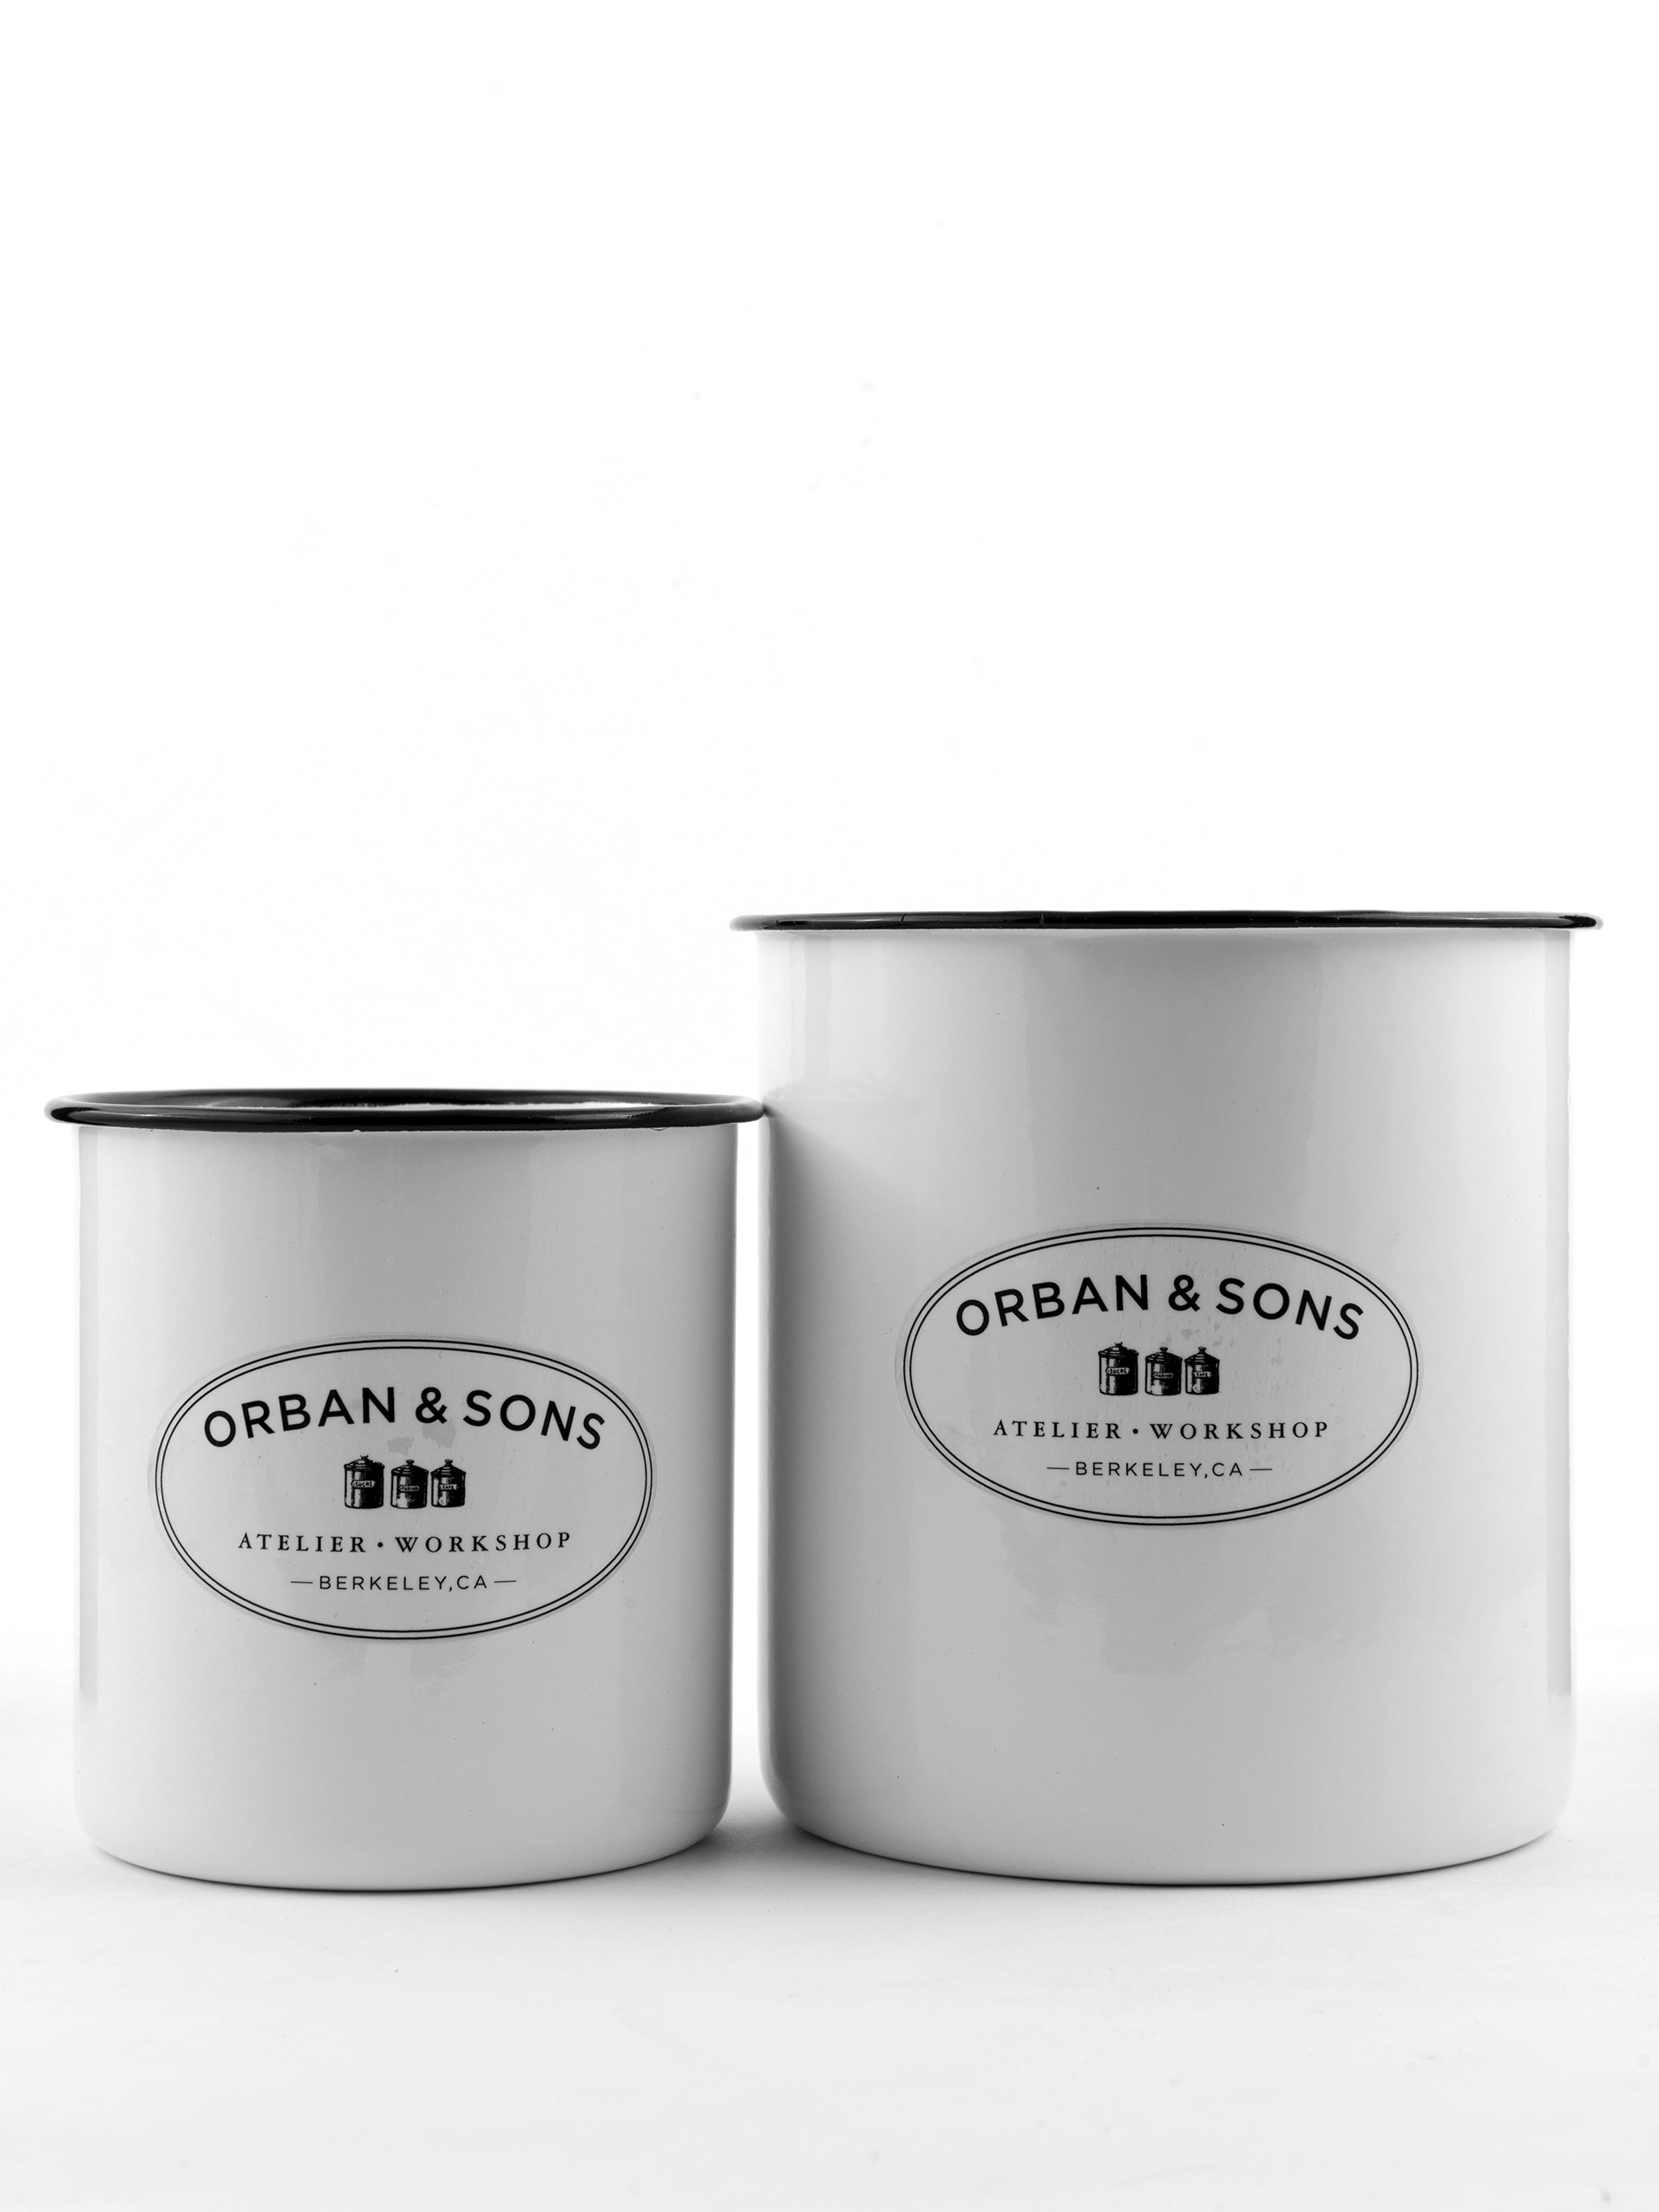 Orban & Sons Enamel Utensils Crock